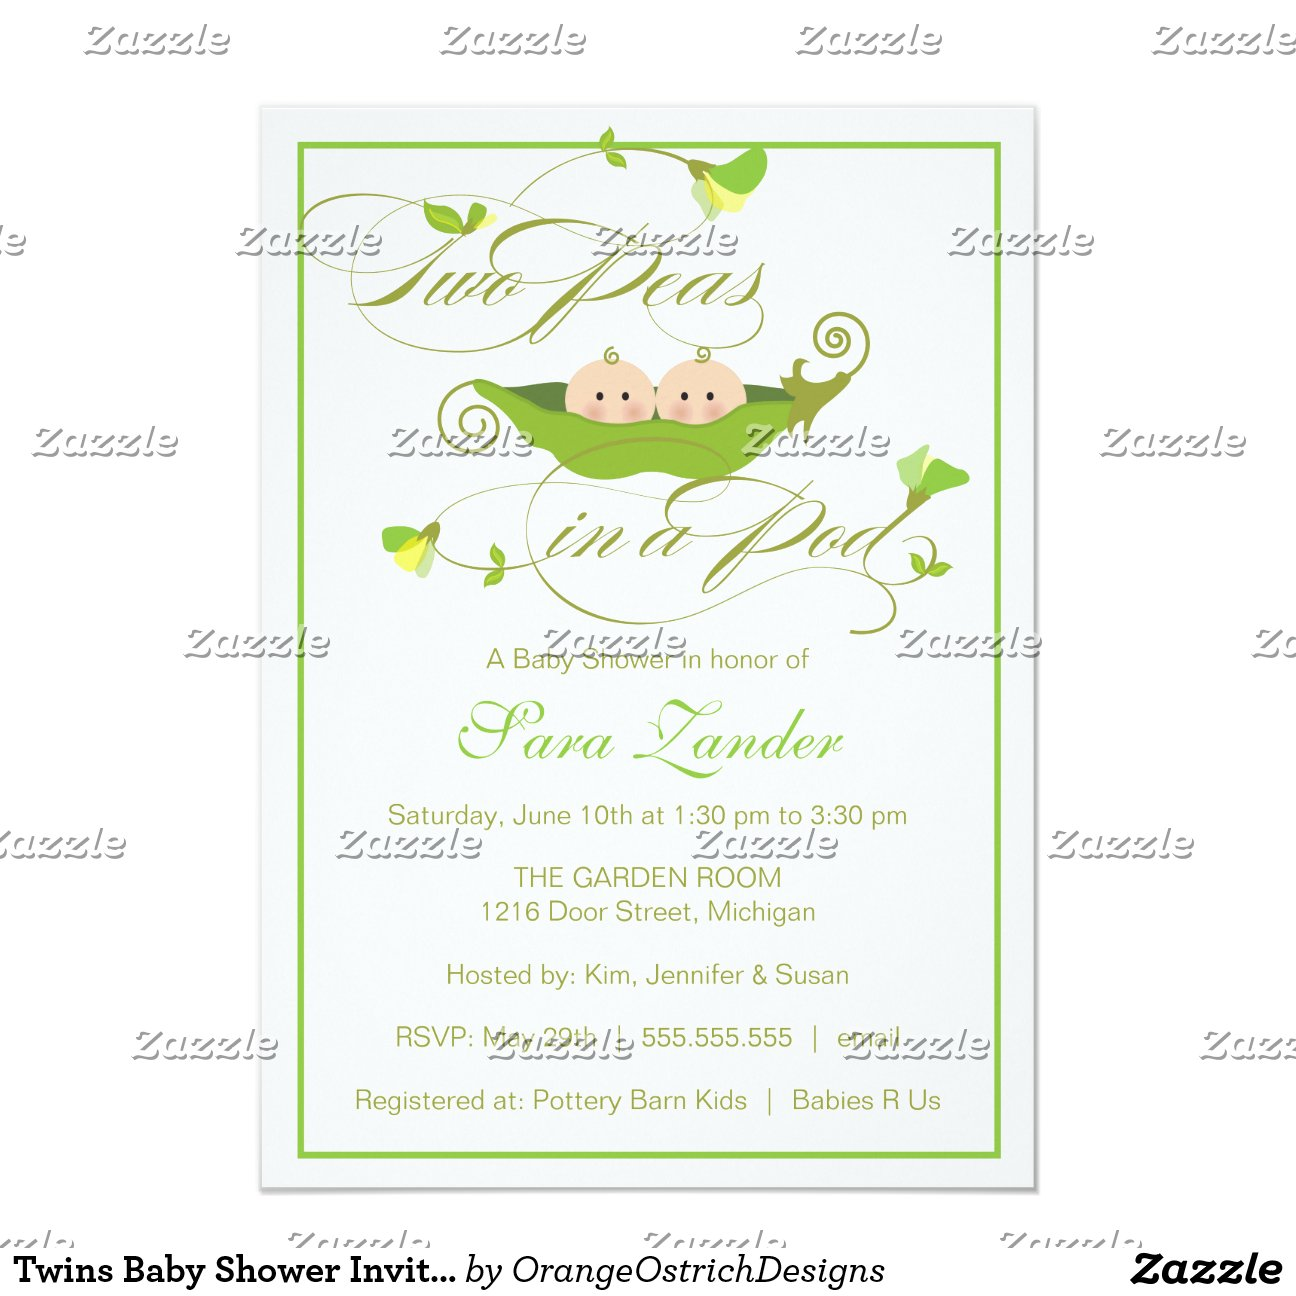 twins_baby_shower_invitation_two_peas_in_a_pod ...